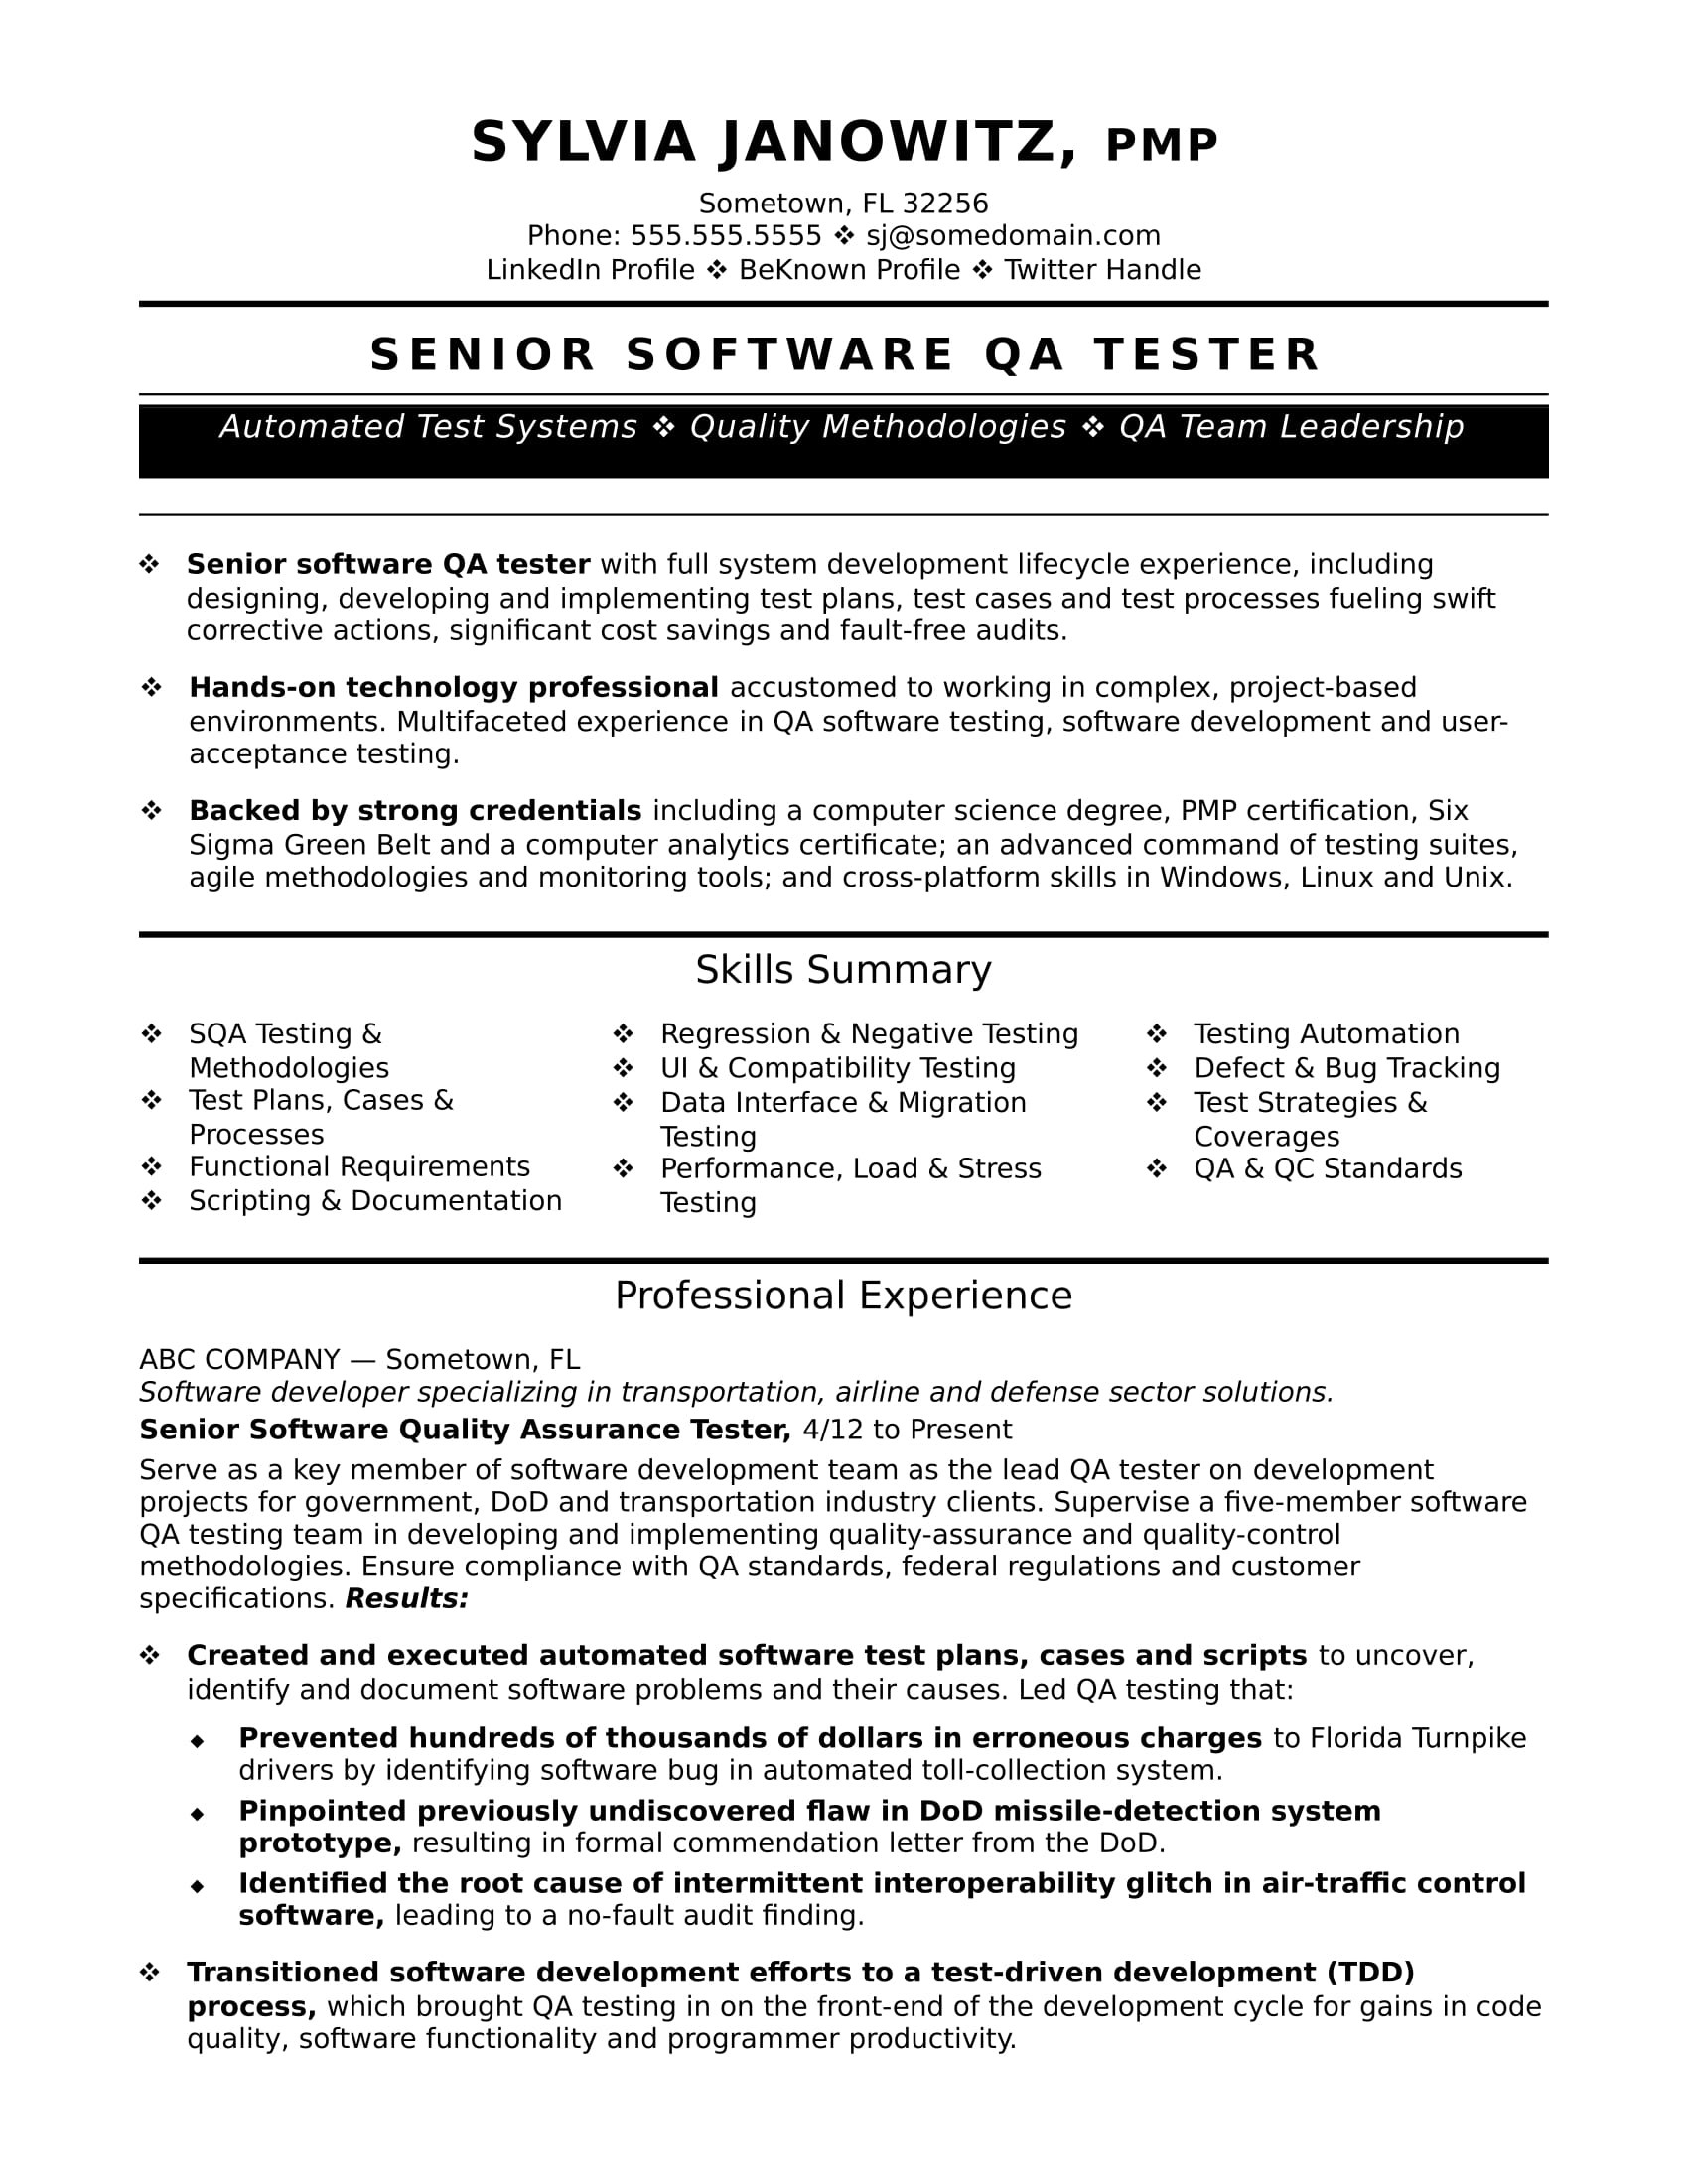 sample resume qa software tester experienced